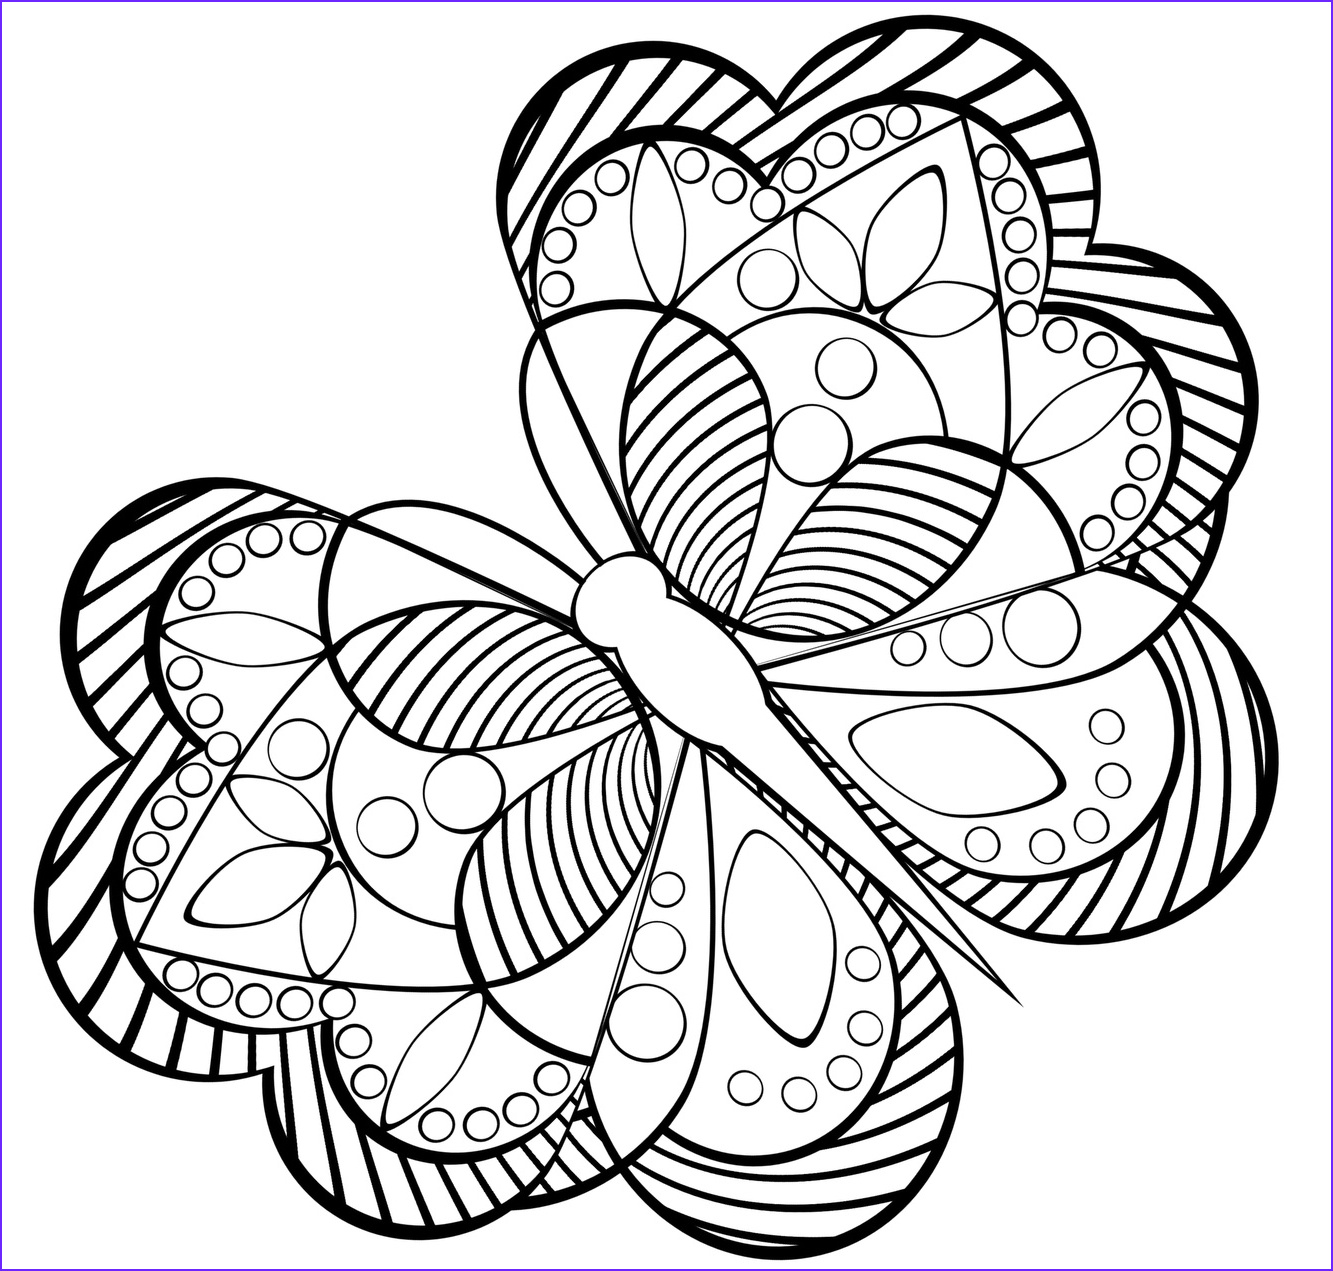 Coloring Stress Beautiful Photography Coloring Pages Anti Stress for Children to and